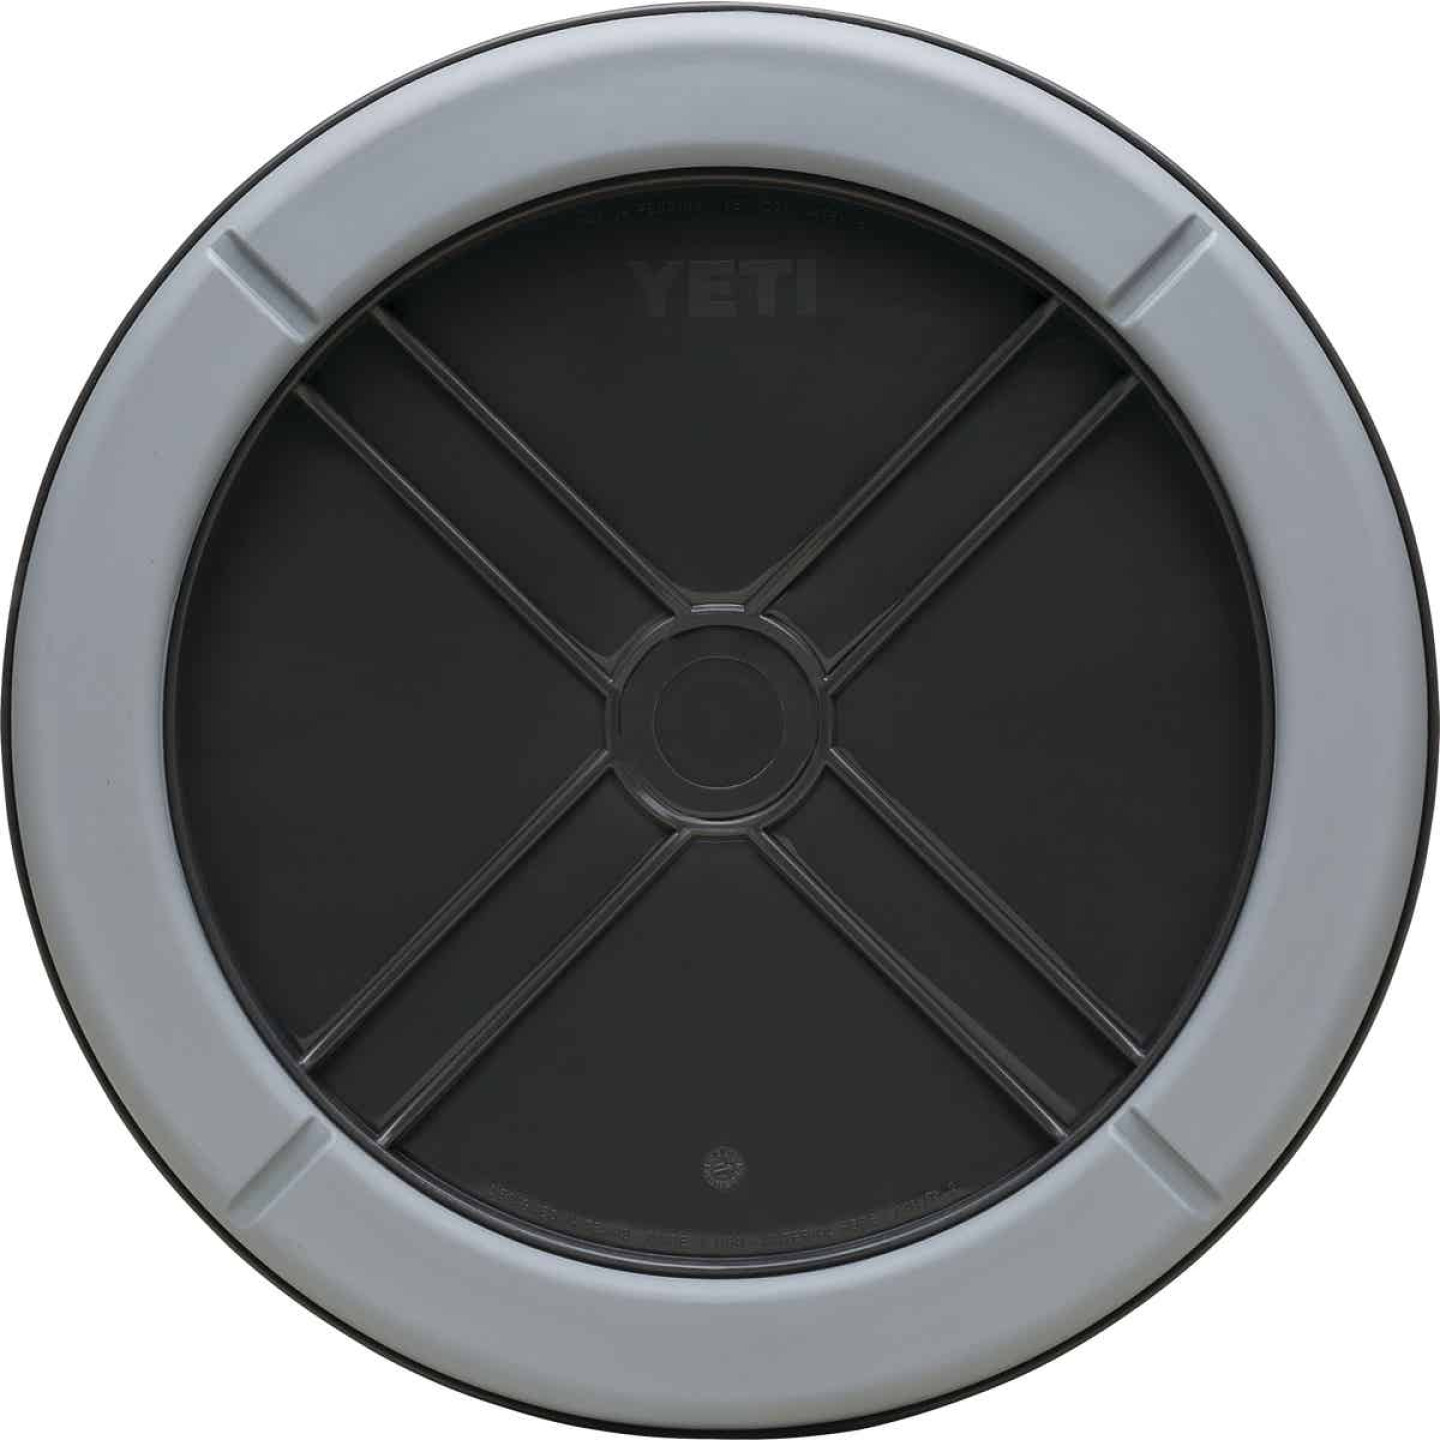 Yeti LoadOut 5 Gal. Charcoal Bucket Image 5